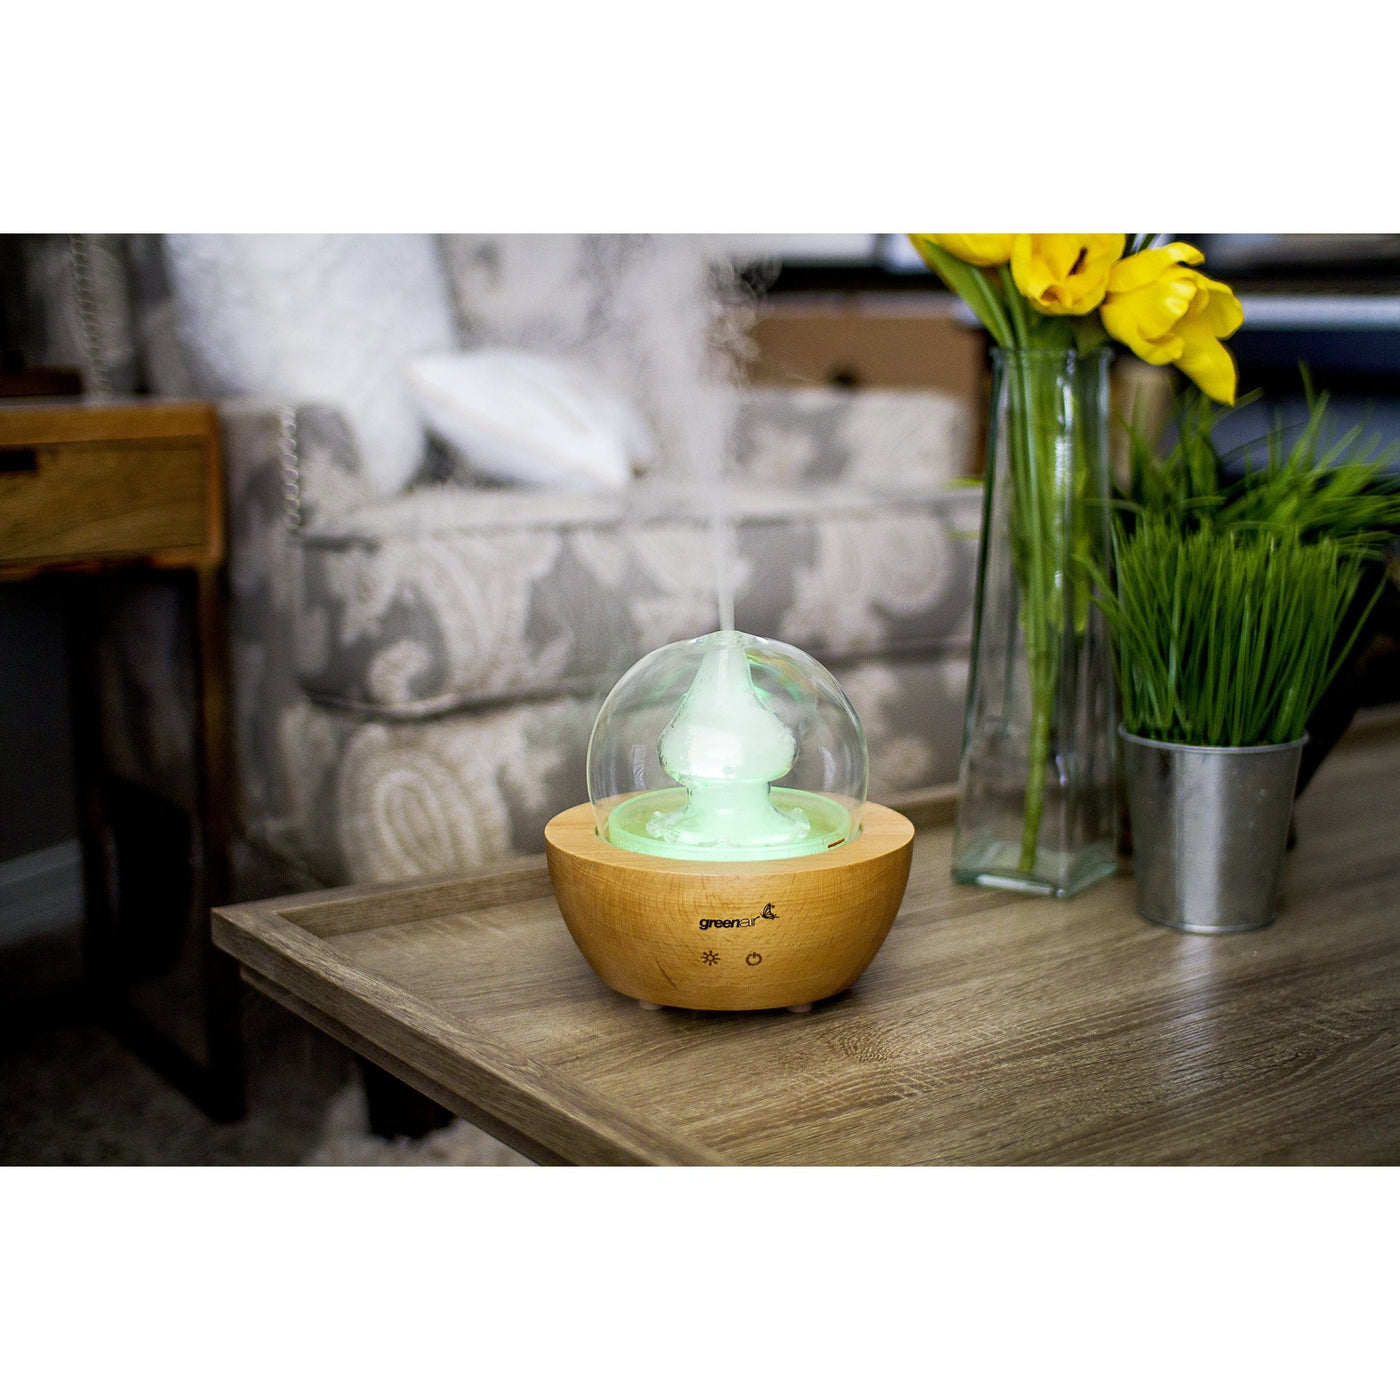 GreenAir Fountain Aromatherapy Diffuser